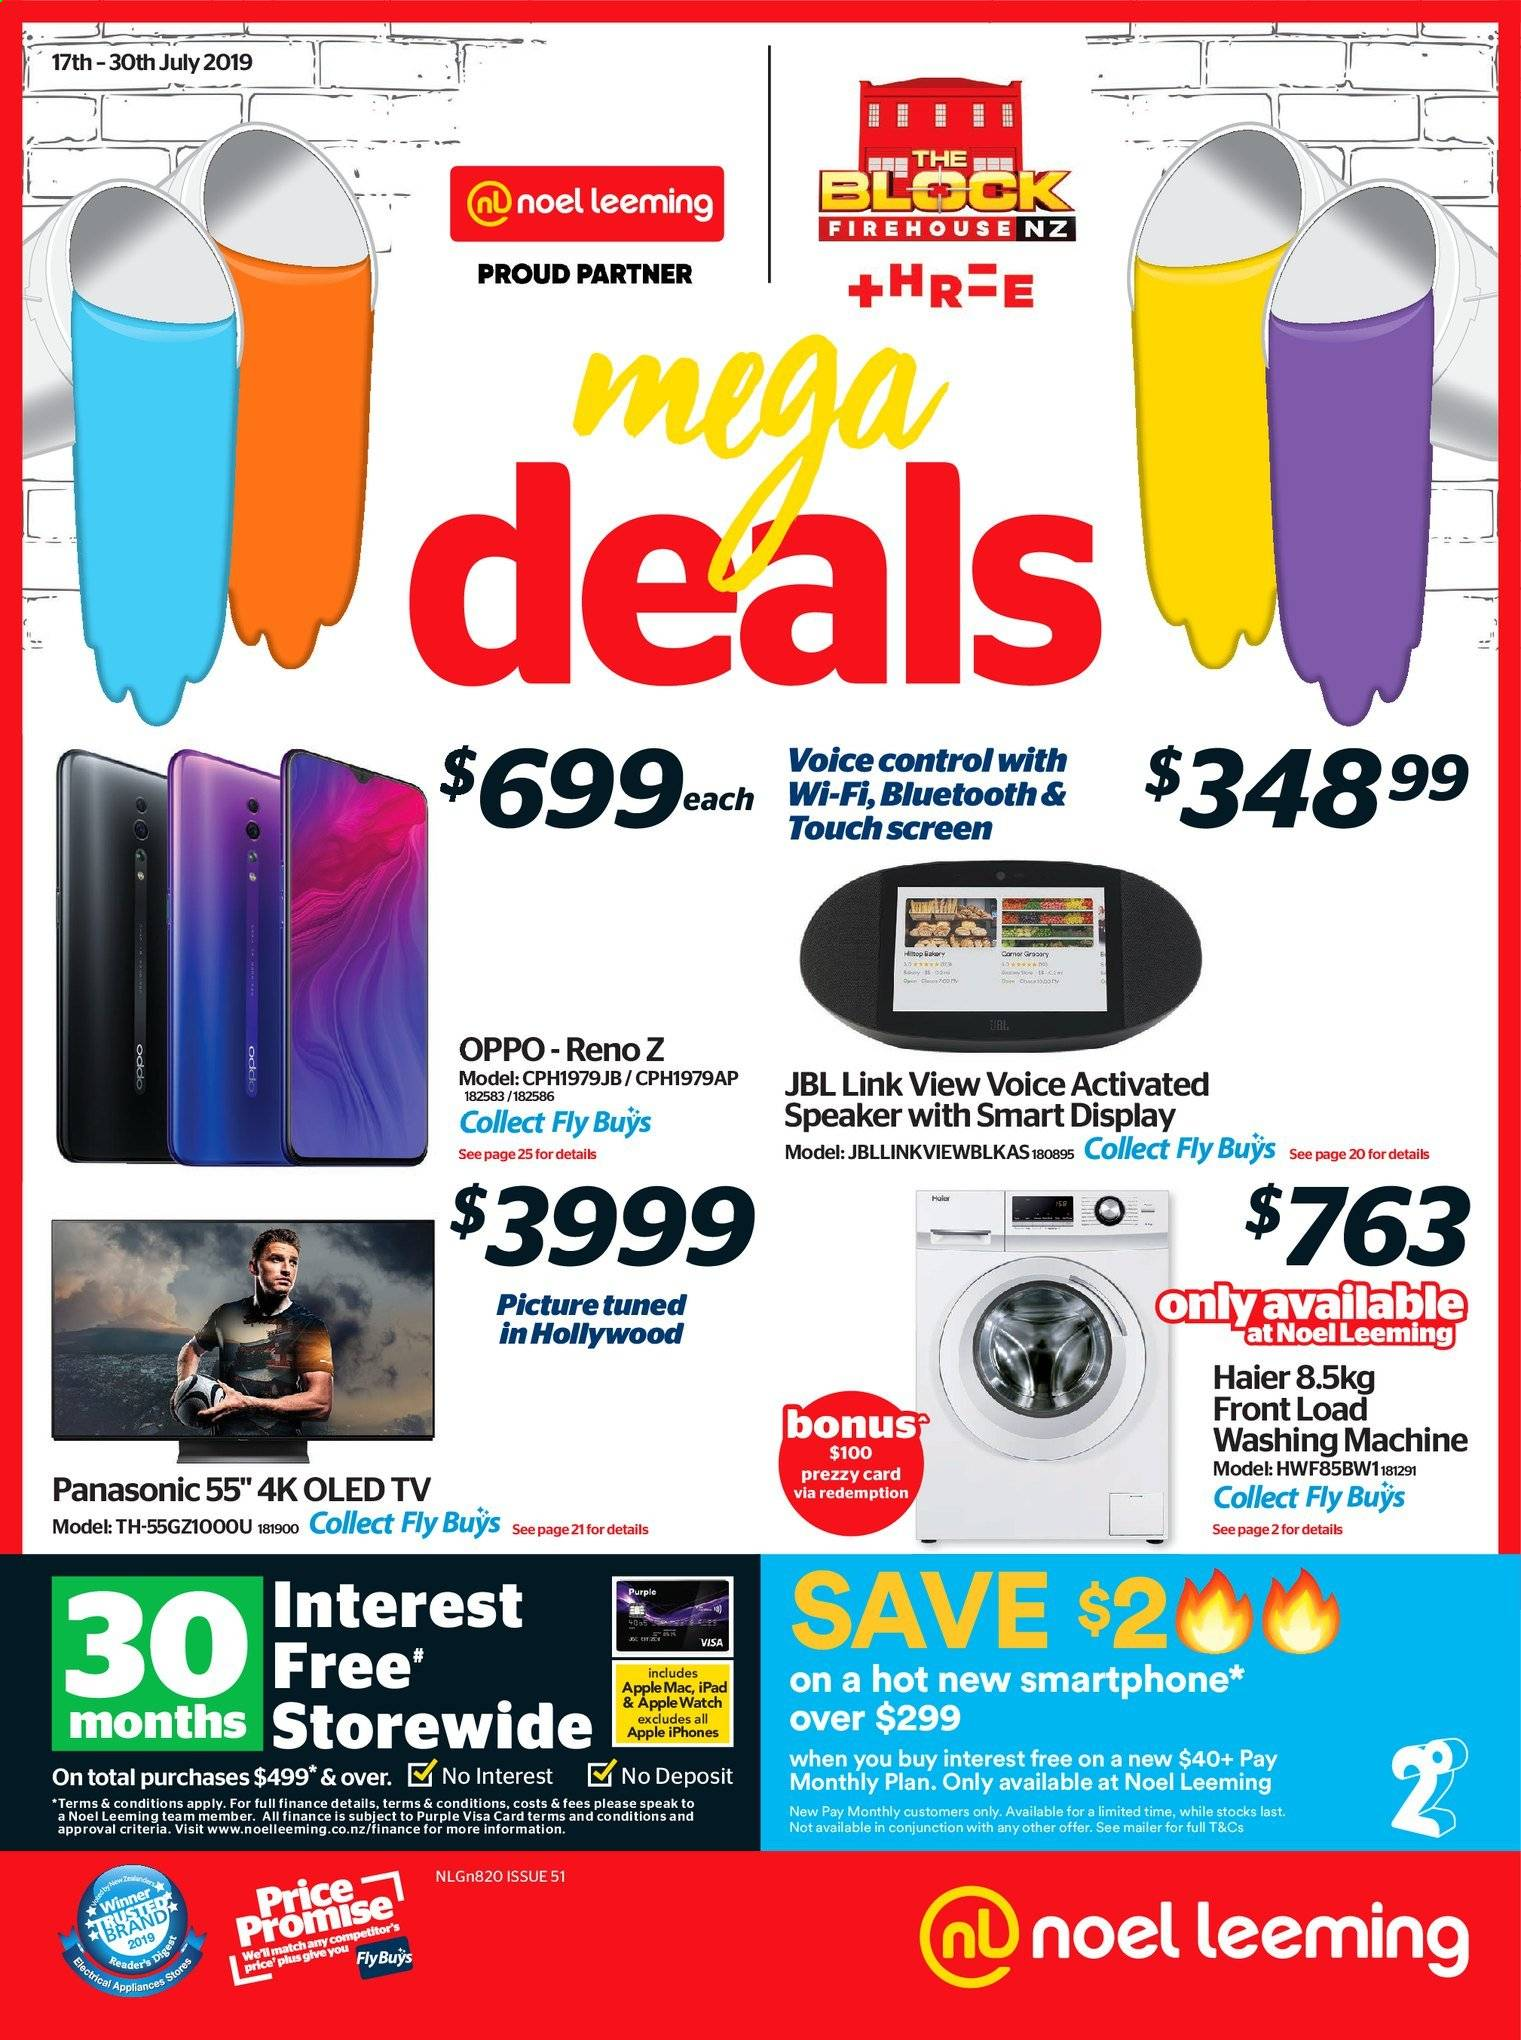 Noel Leeming mailer - 17.07.2019 - 30.07.2019 - Sales products - Panasonic, Apple, iPad, Oppo, Haier, smart phone, Apple Watch, TV, speaker, JBL, washing machine. Page 1.